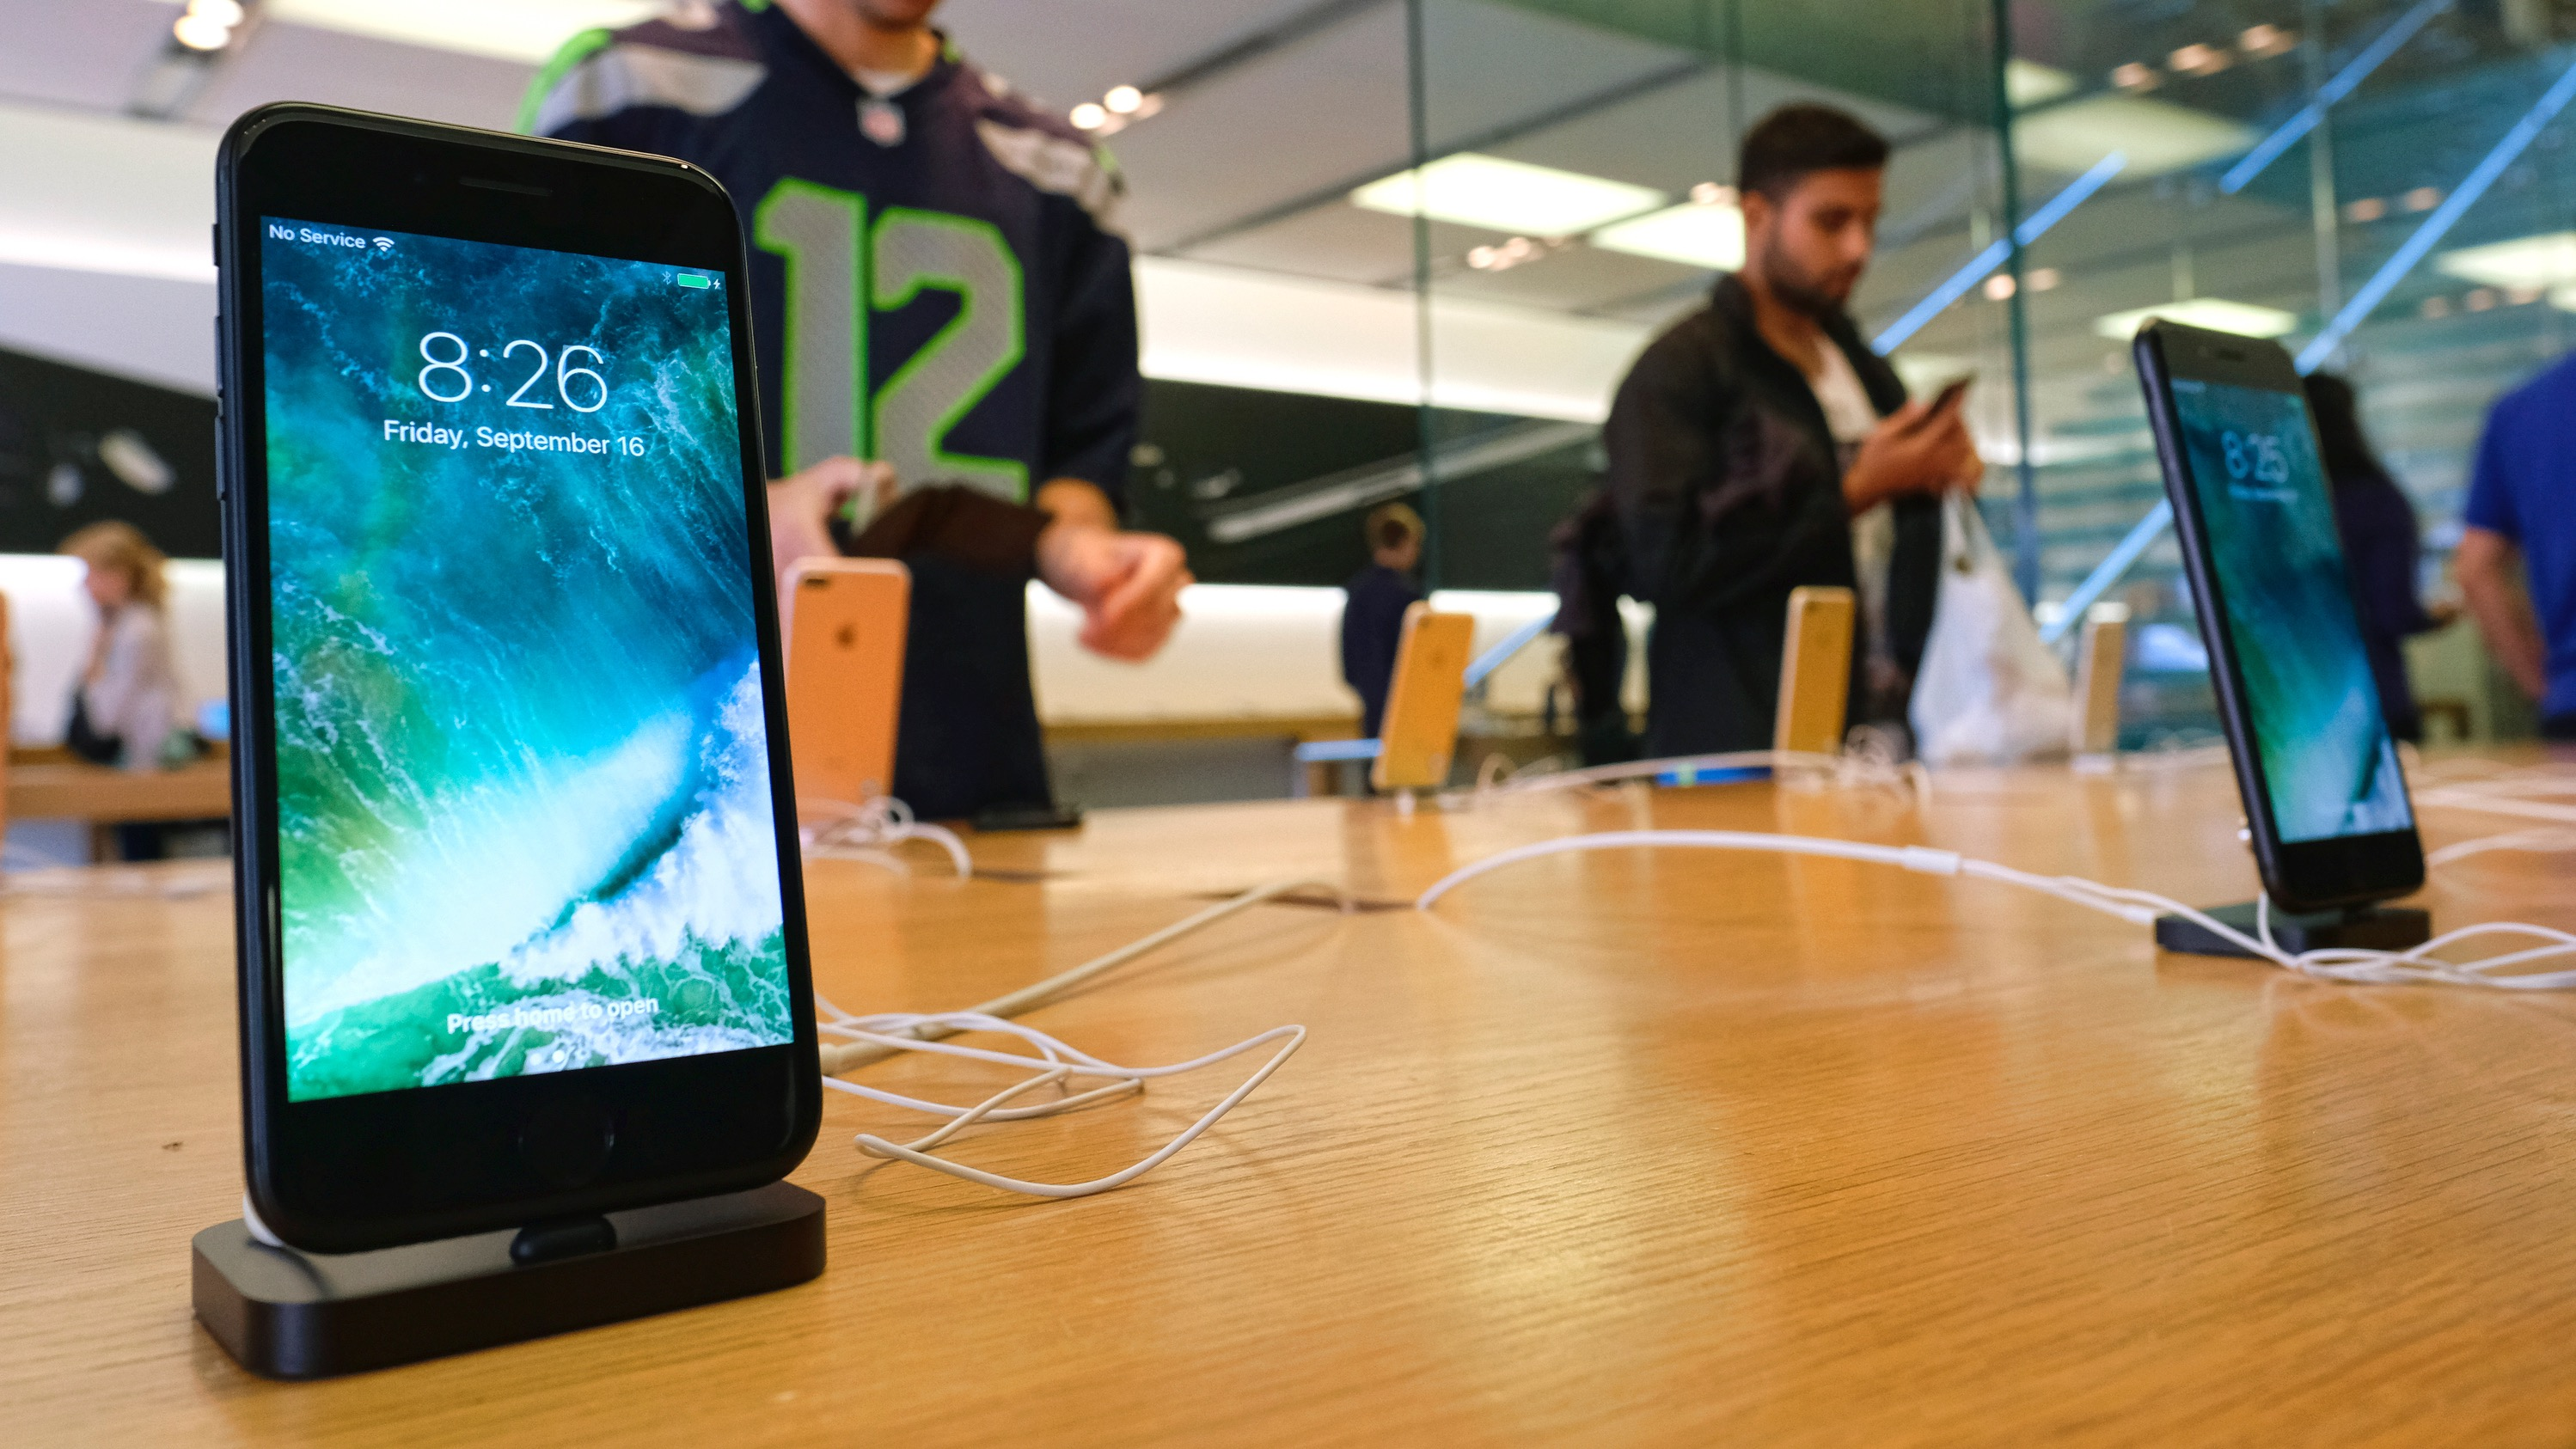 The new Apple iPhone 7 is displayed at the Apple Store at the Grove in Los Angeles on Friday, Sept. 16, 2016. The latest Apple Watches and iPhone 7 were released Friday. (AP Photo/Richard Vogel)